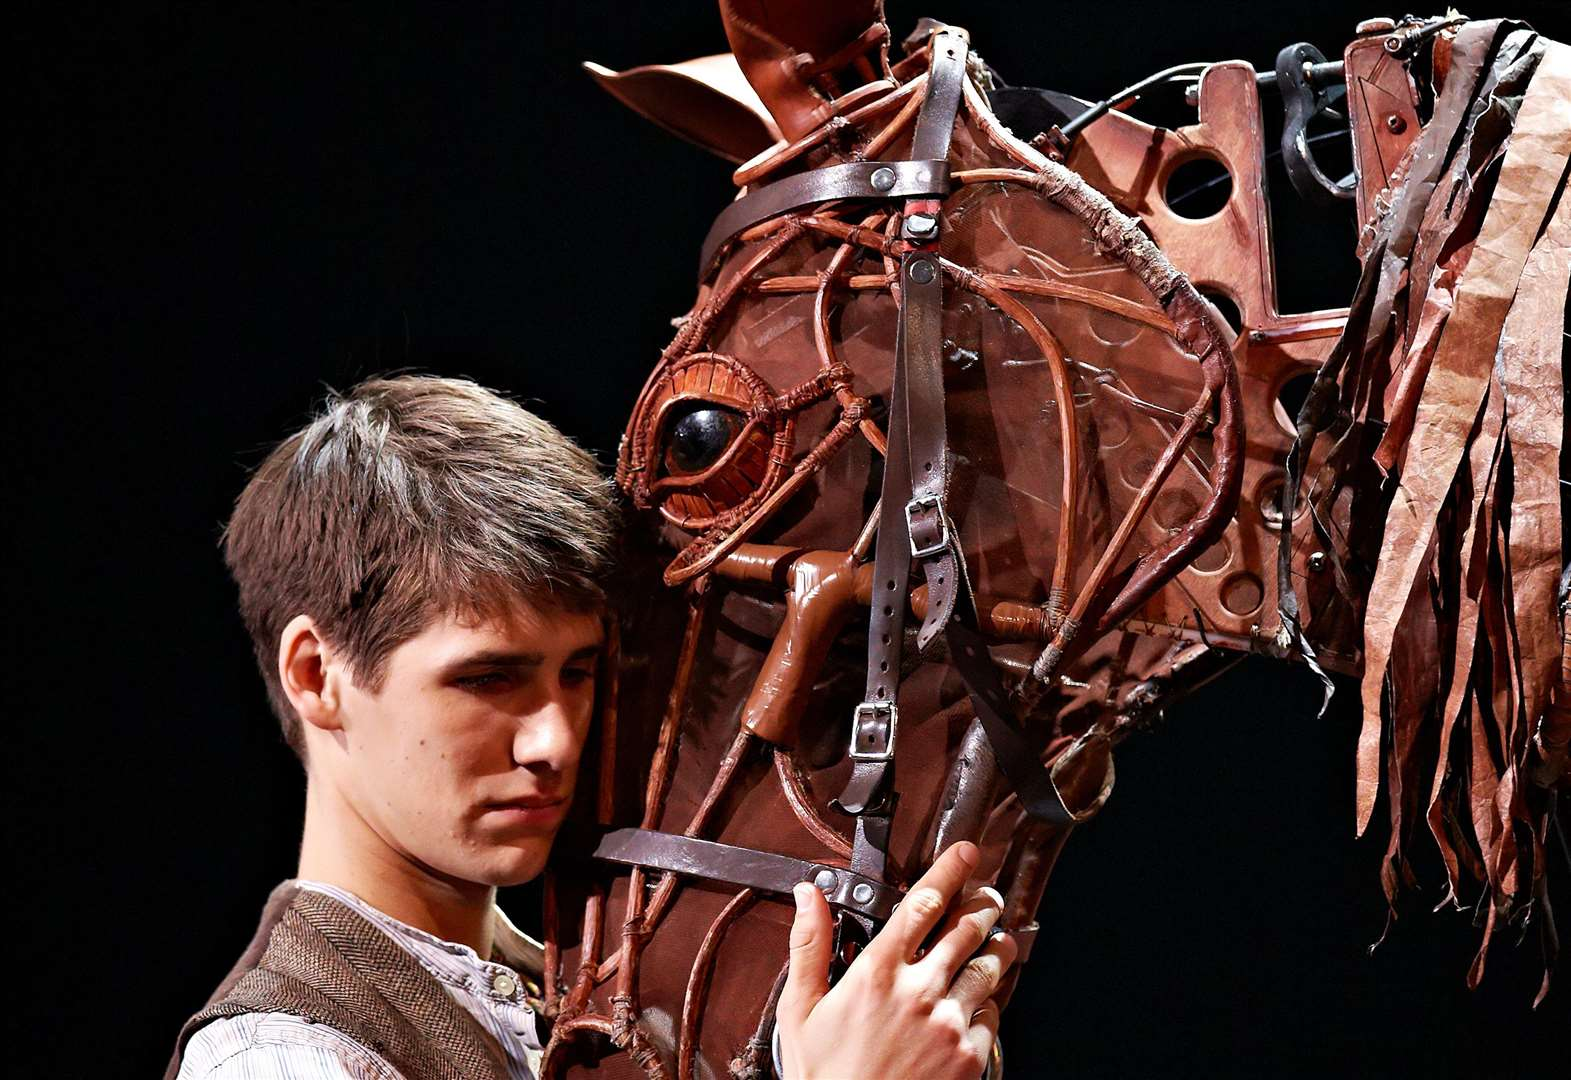 Epic War Horse stage show available at home